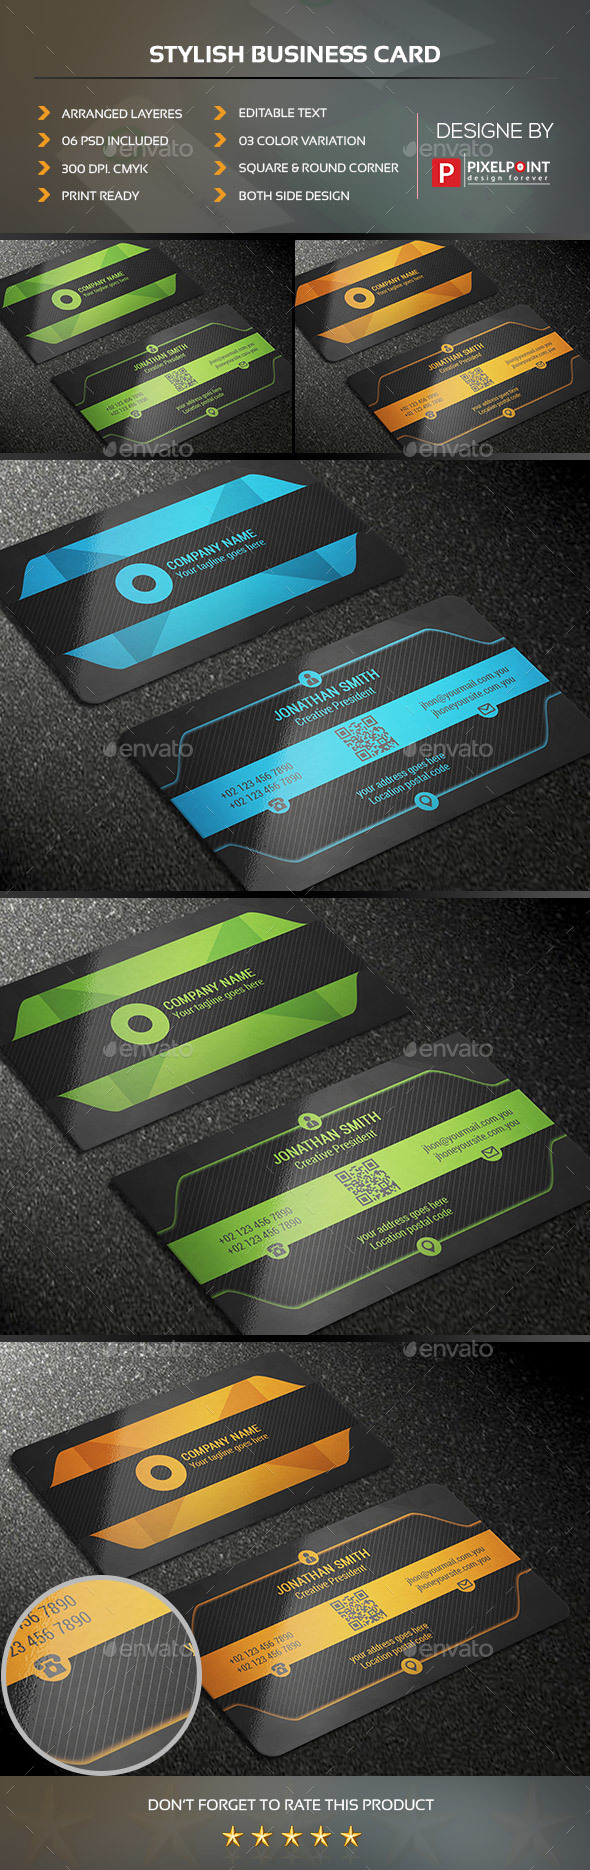 Stylish Business Card - Business Cards Print Templates